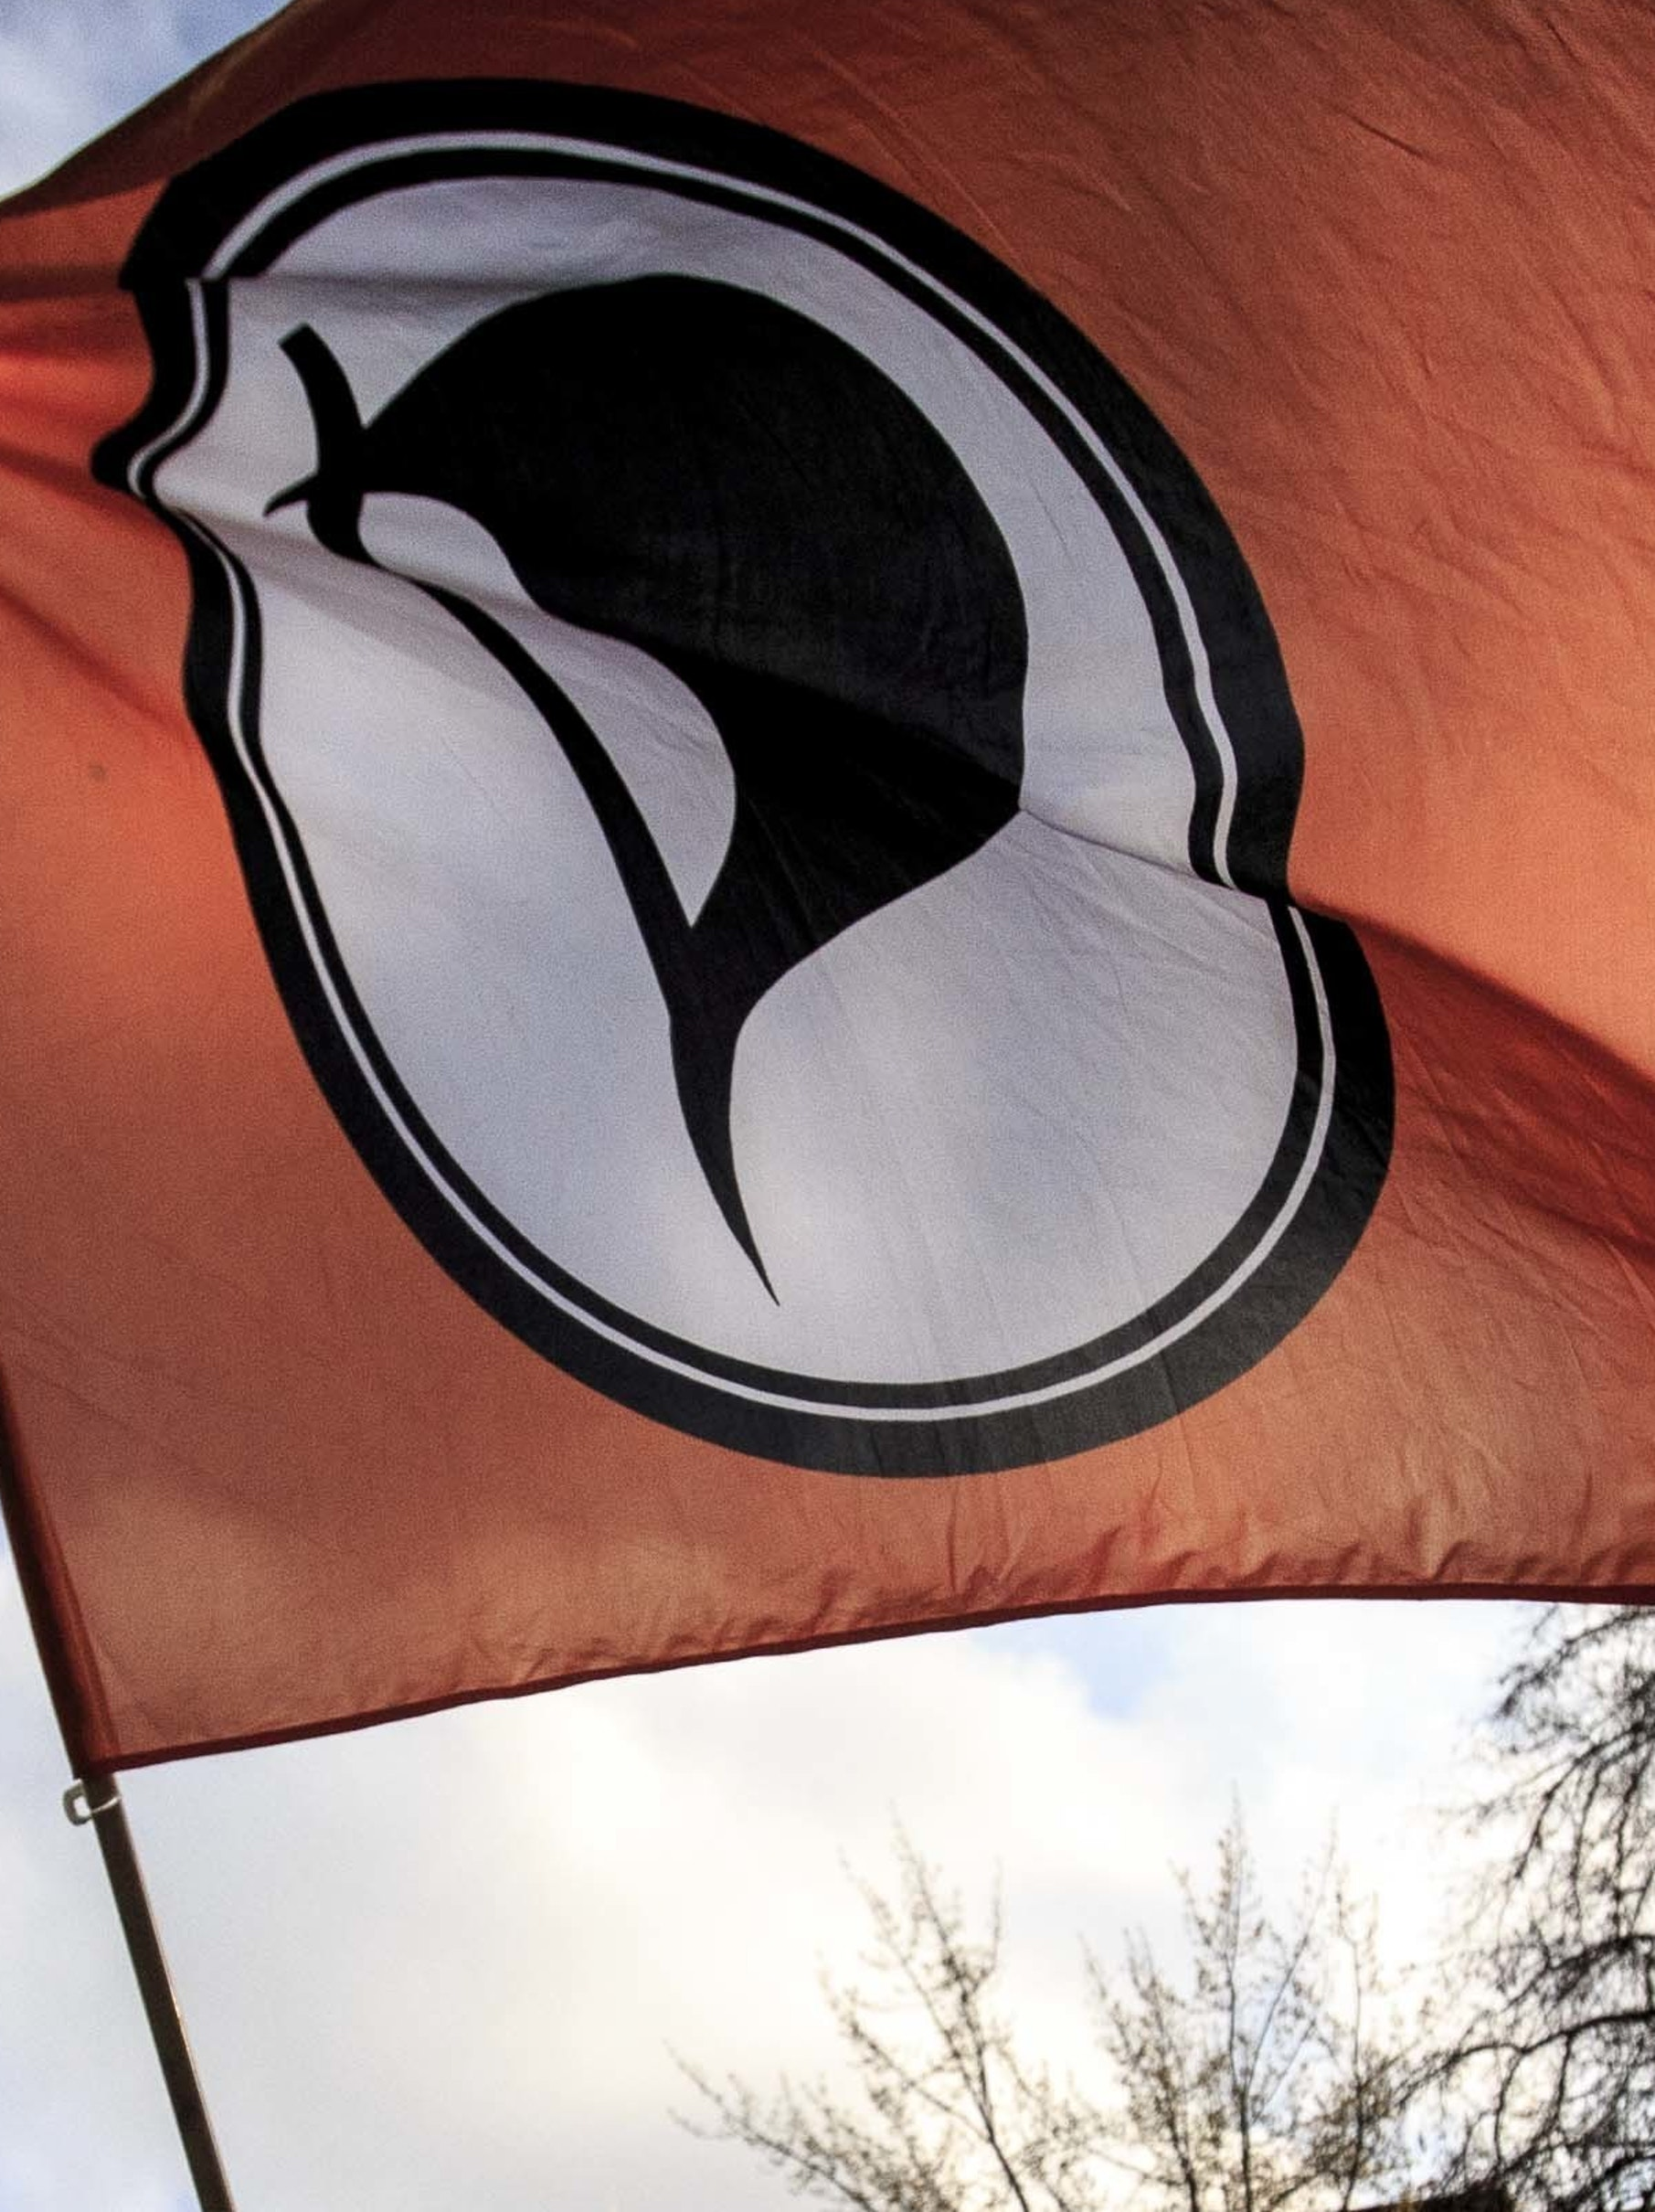 The Iceland Pirate Party Ramps Up to